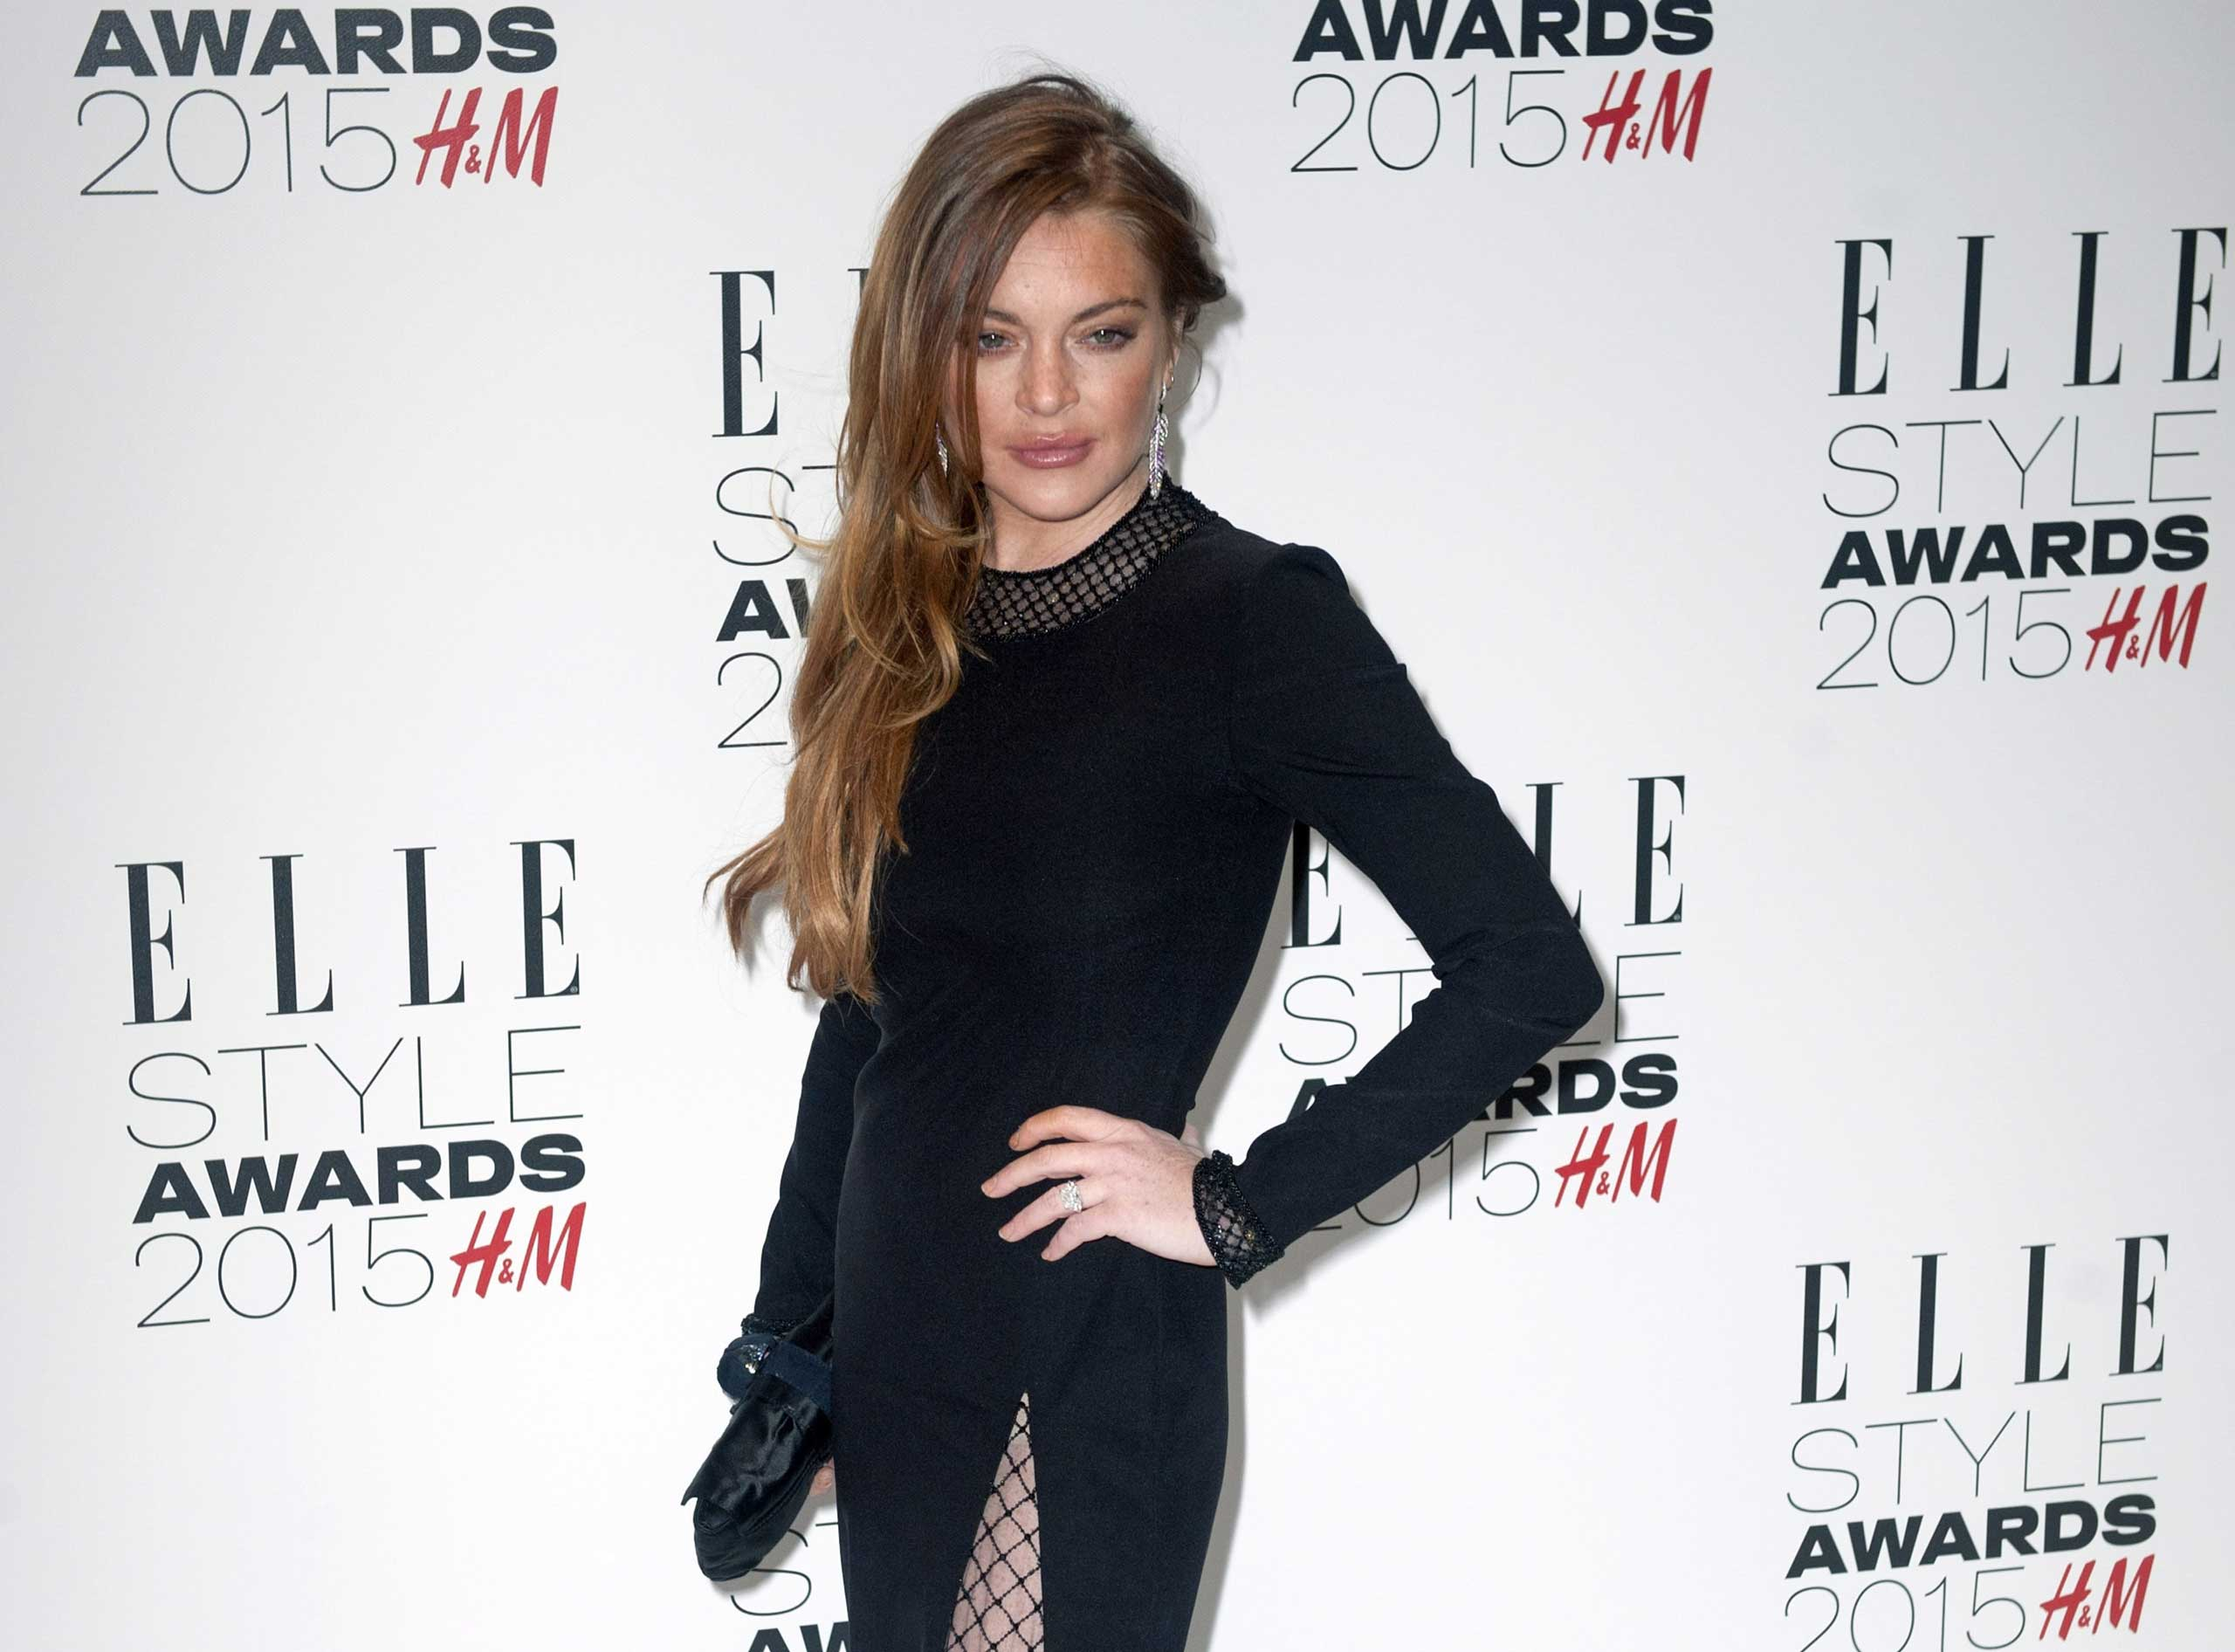 Lindsay Lohan arrives at the Elle Style Awards in London on Feb. 24, 2015.